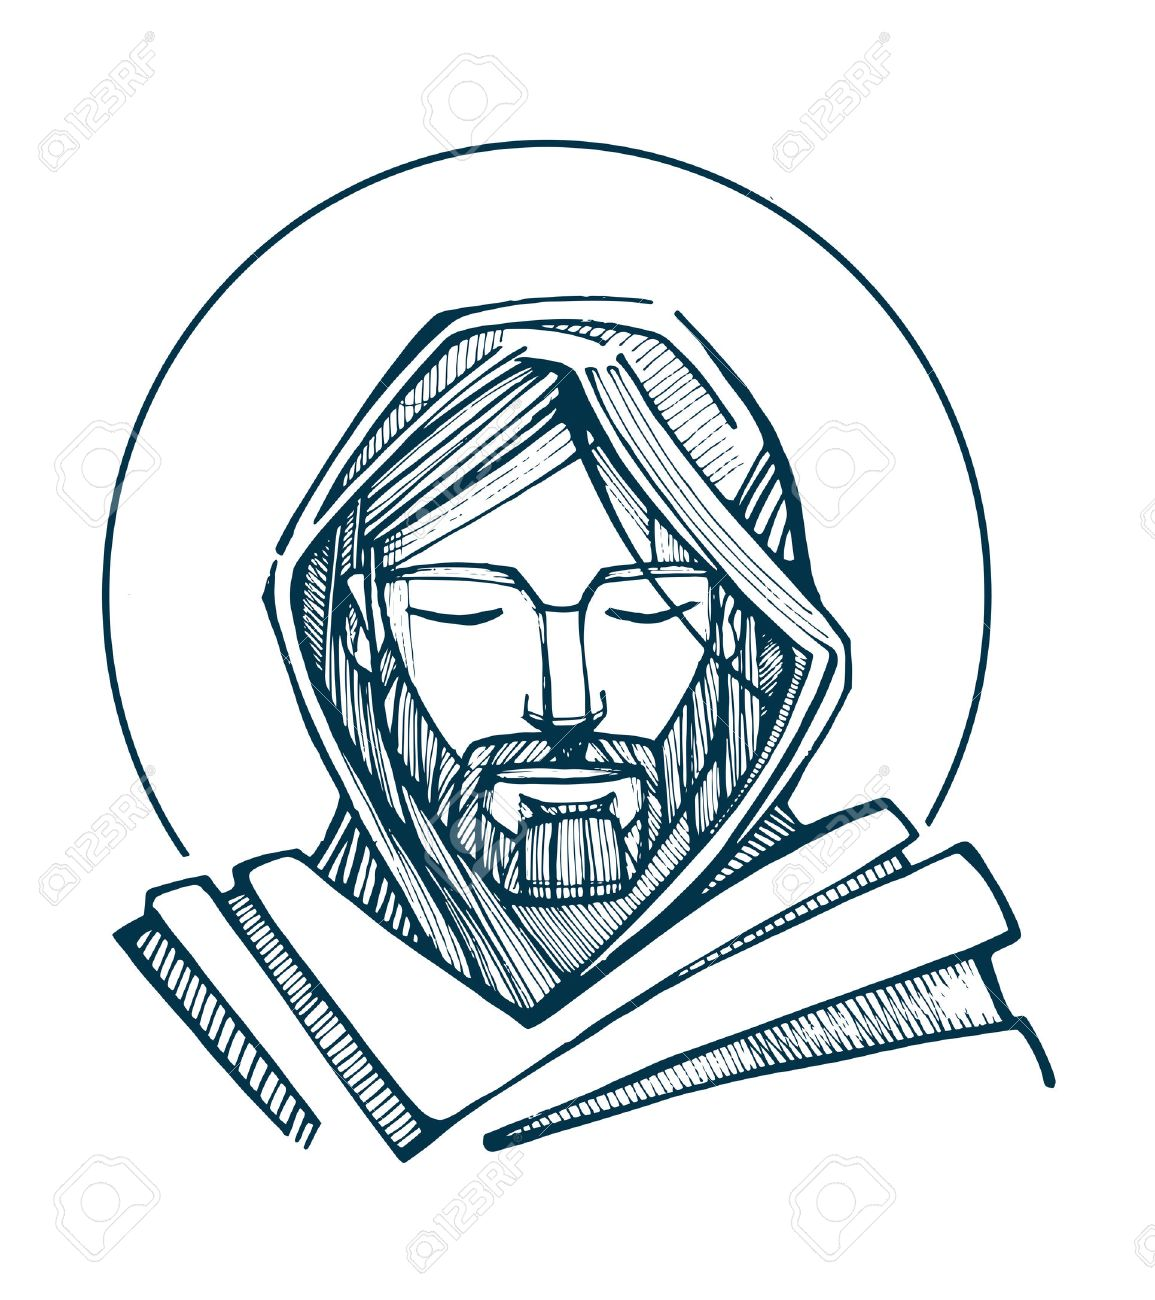 1155x1300 1,455 Jesus Face Stock Vector Illustration And Royalty Free Jesus